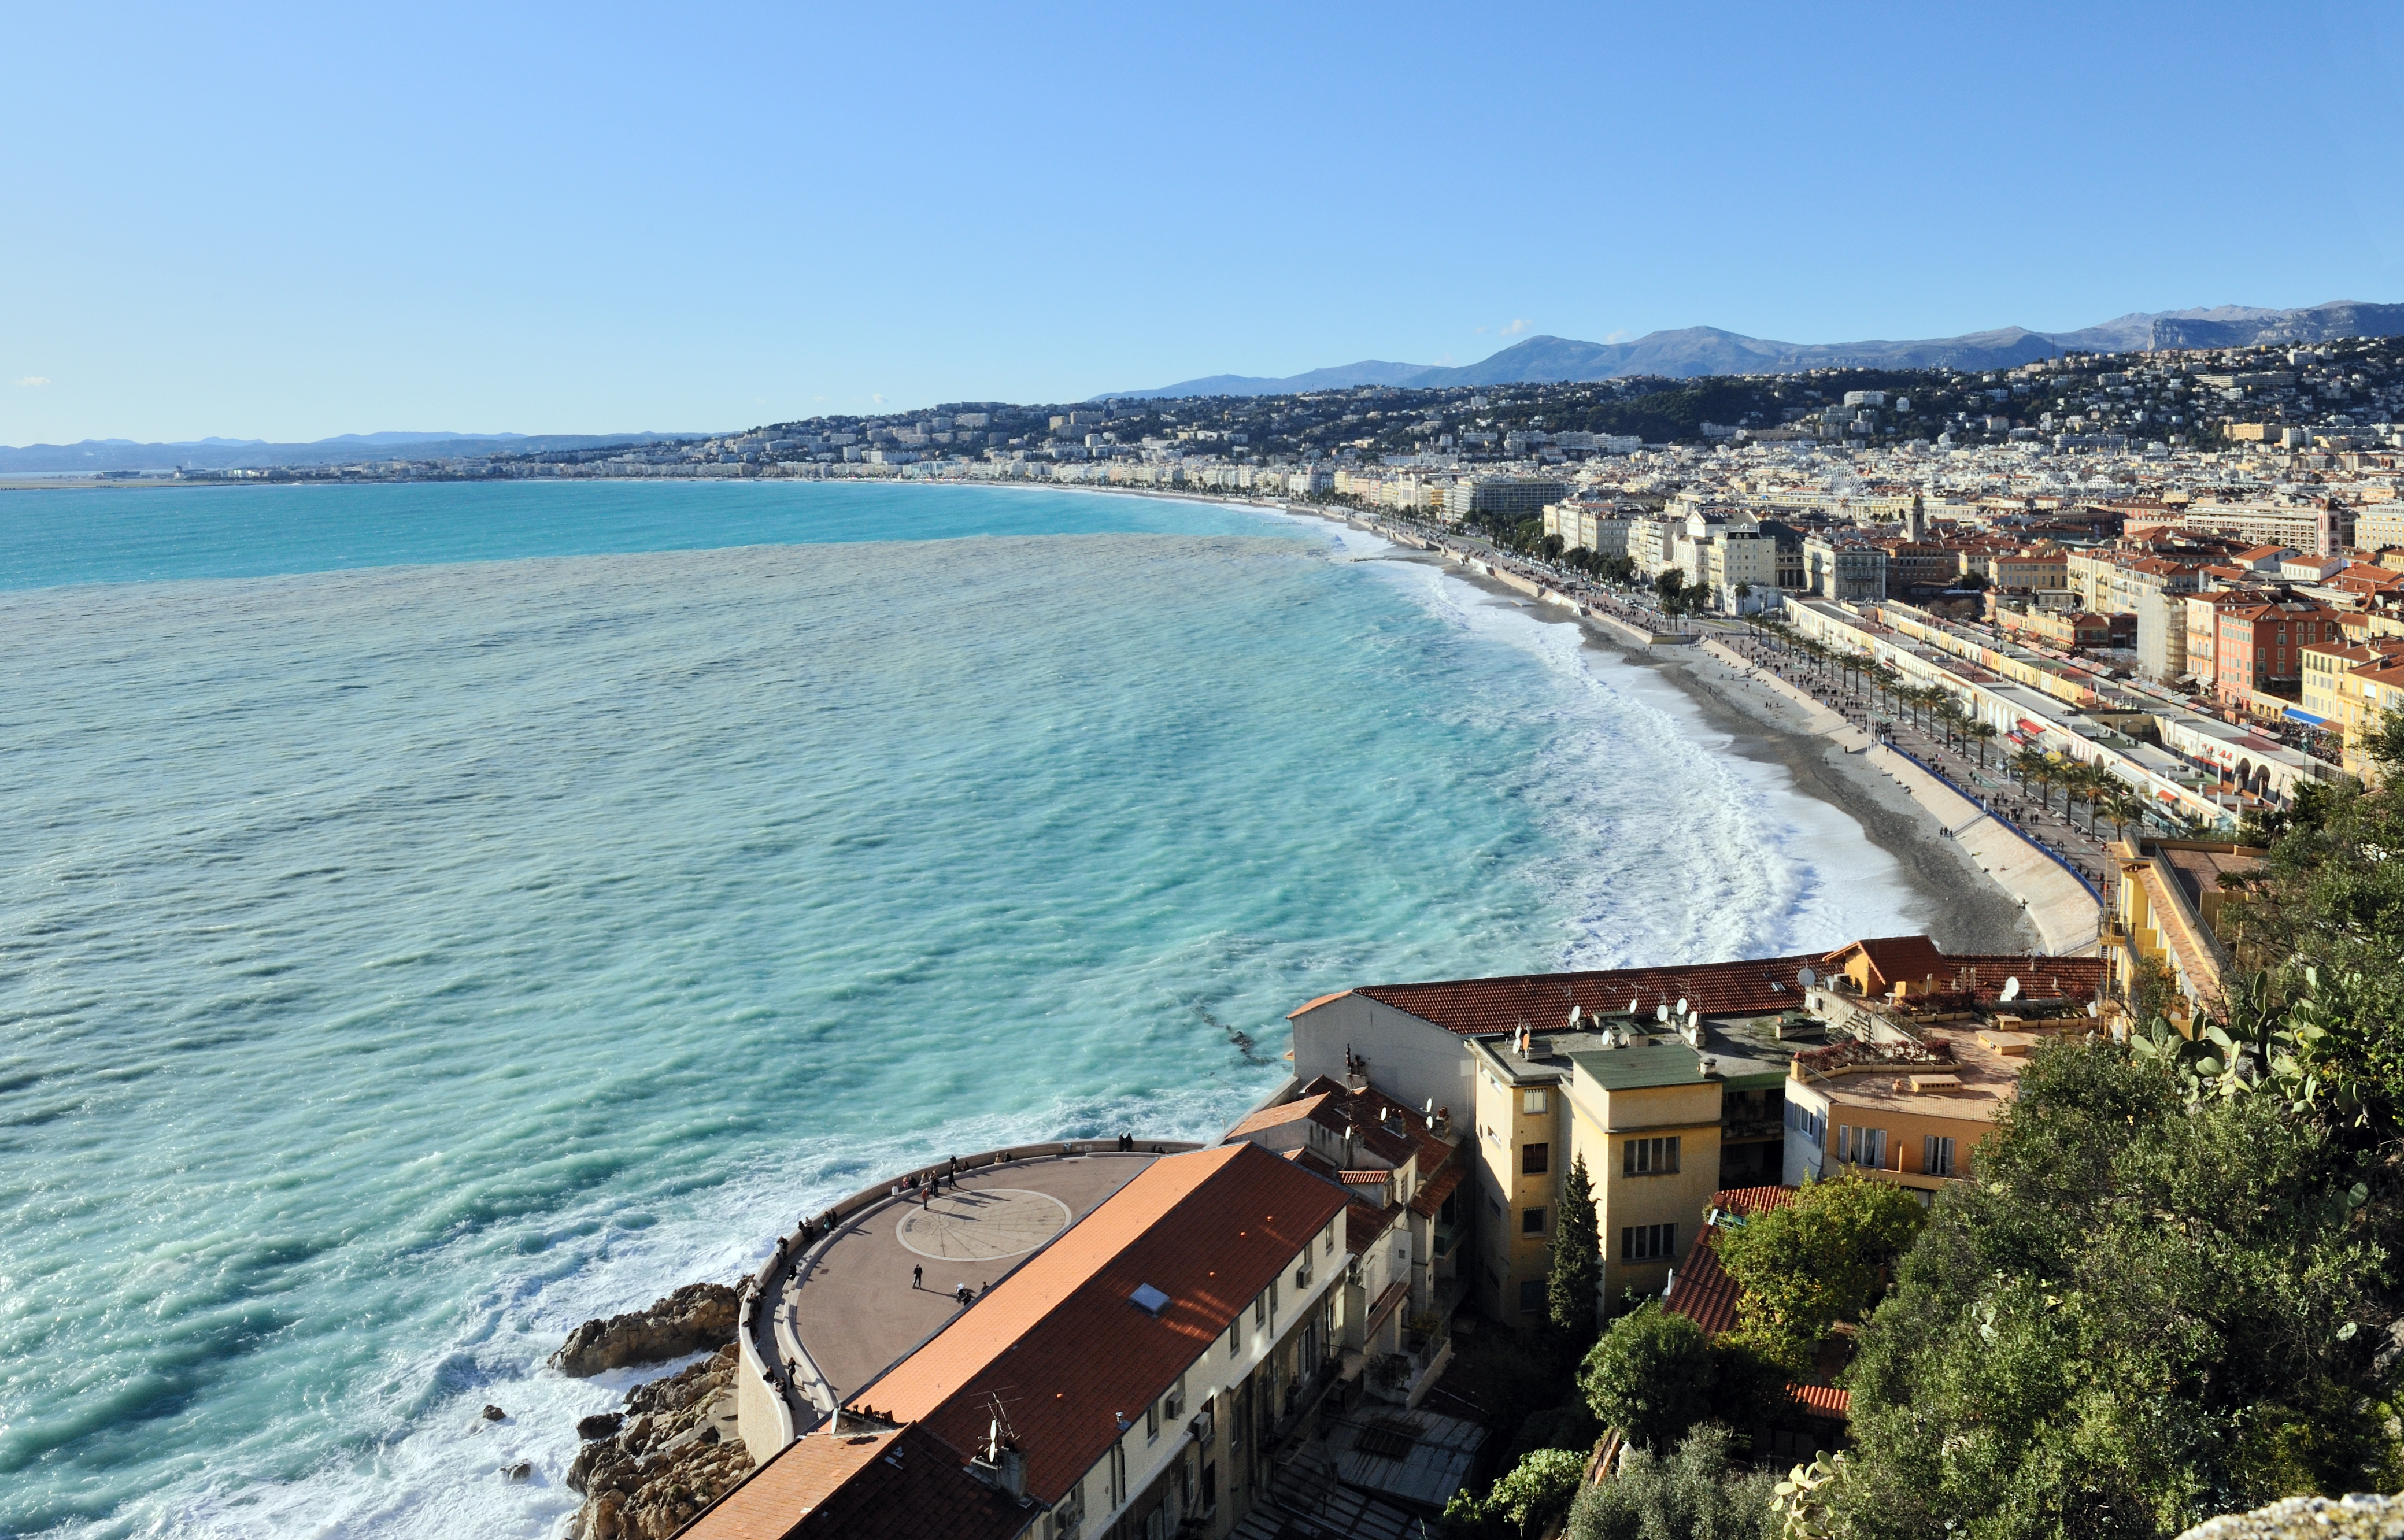 Https Commons Wikimedia Org Wiki File Nice Baie Des Anges 02 Jpg